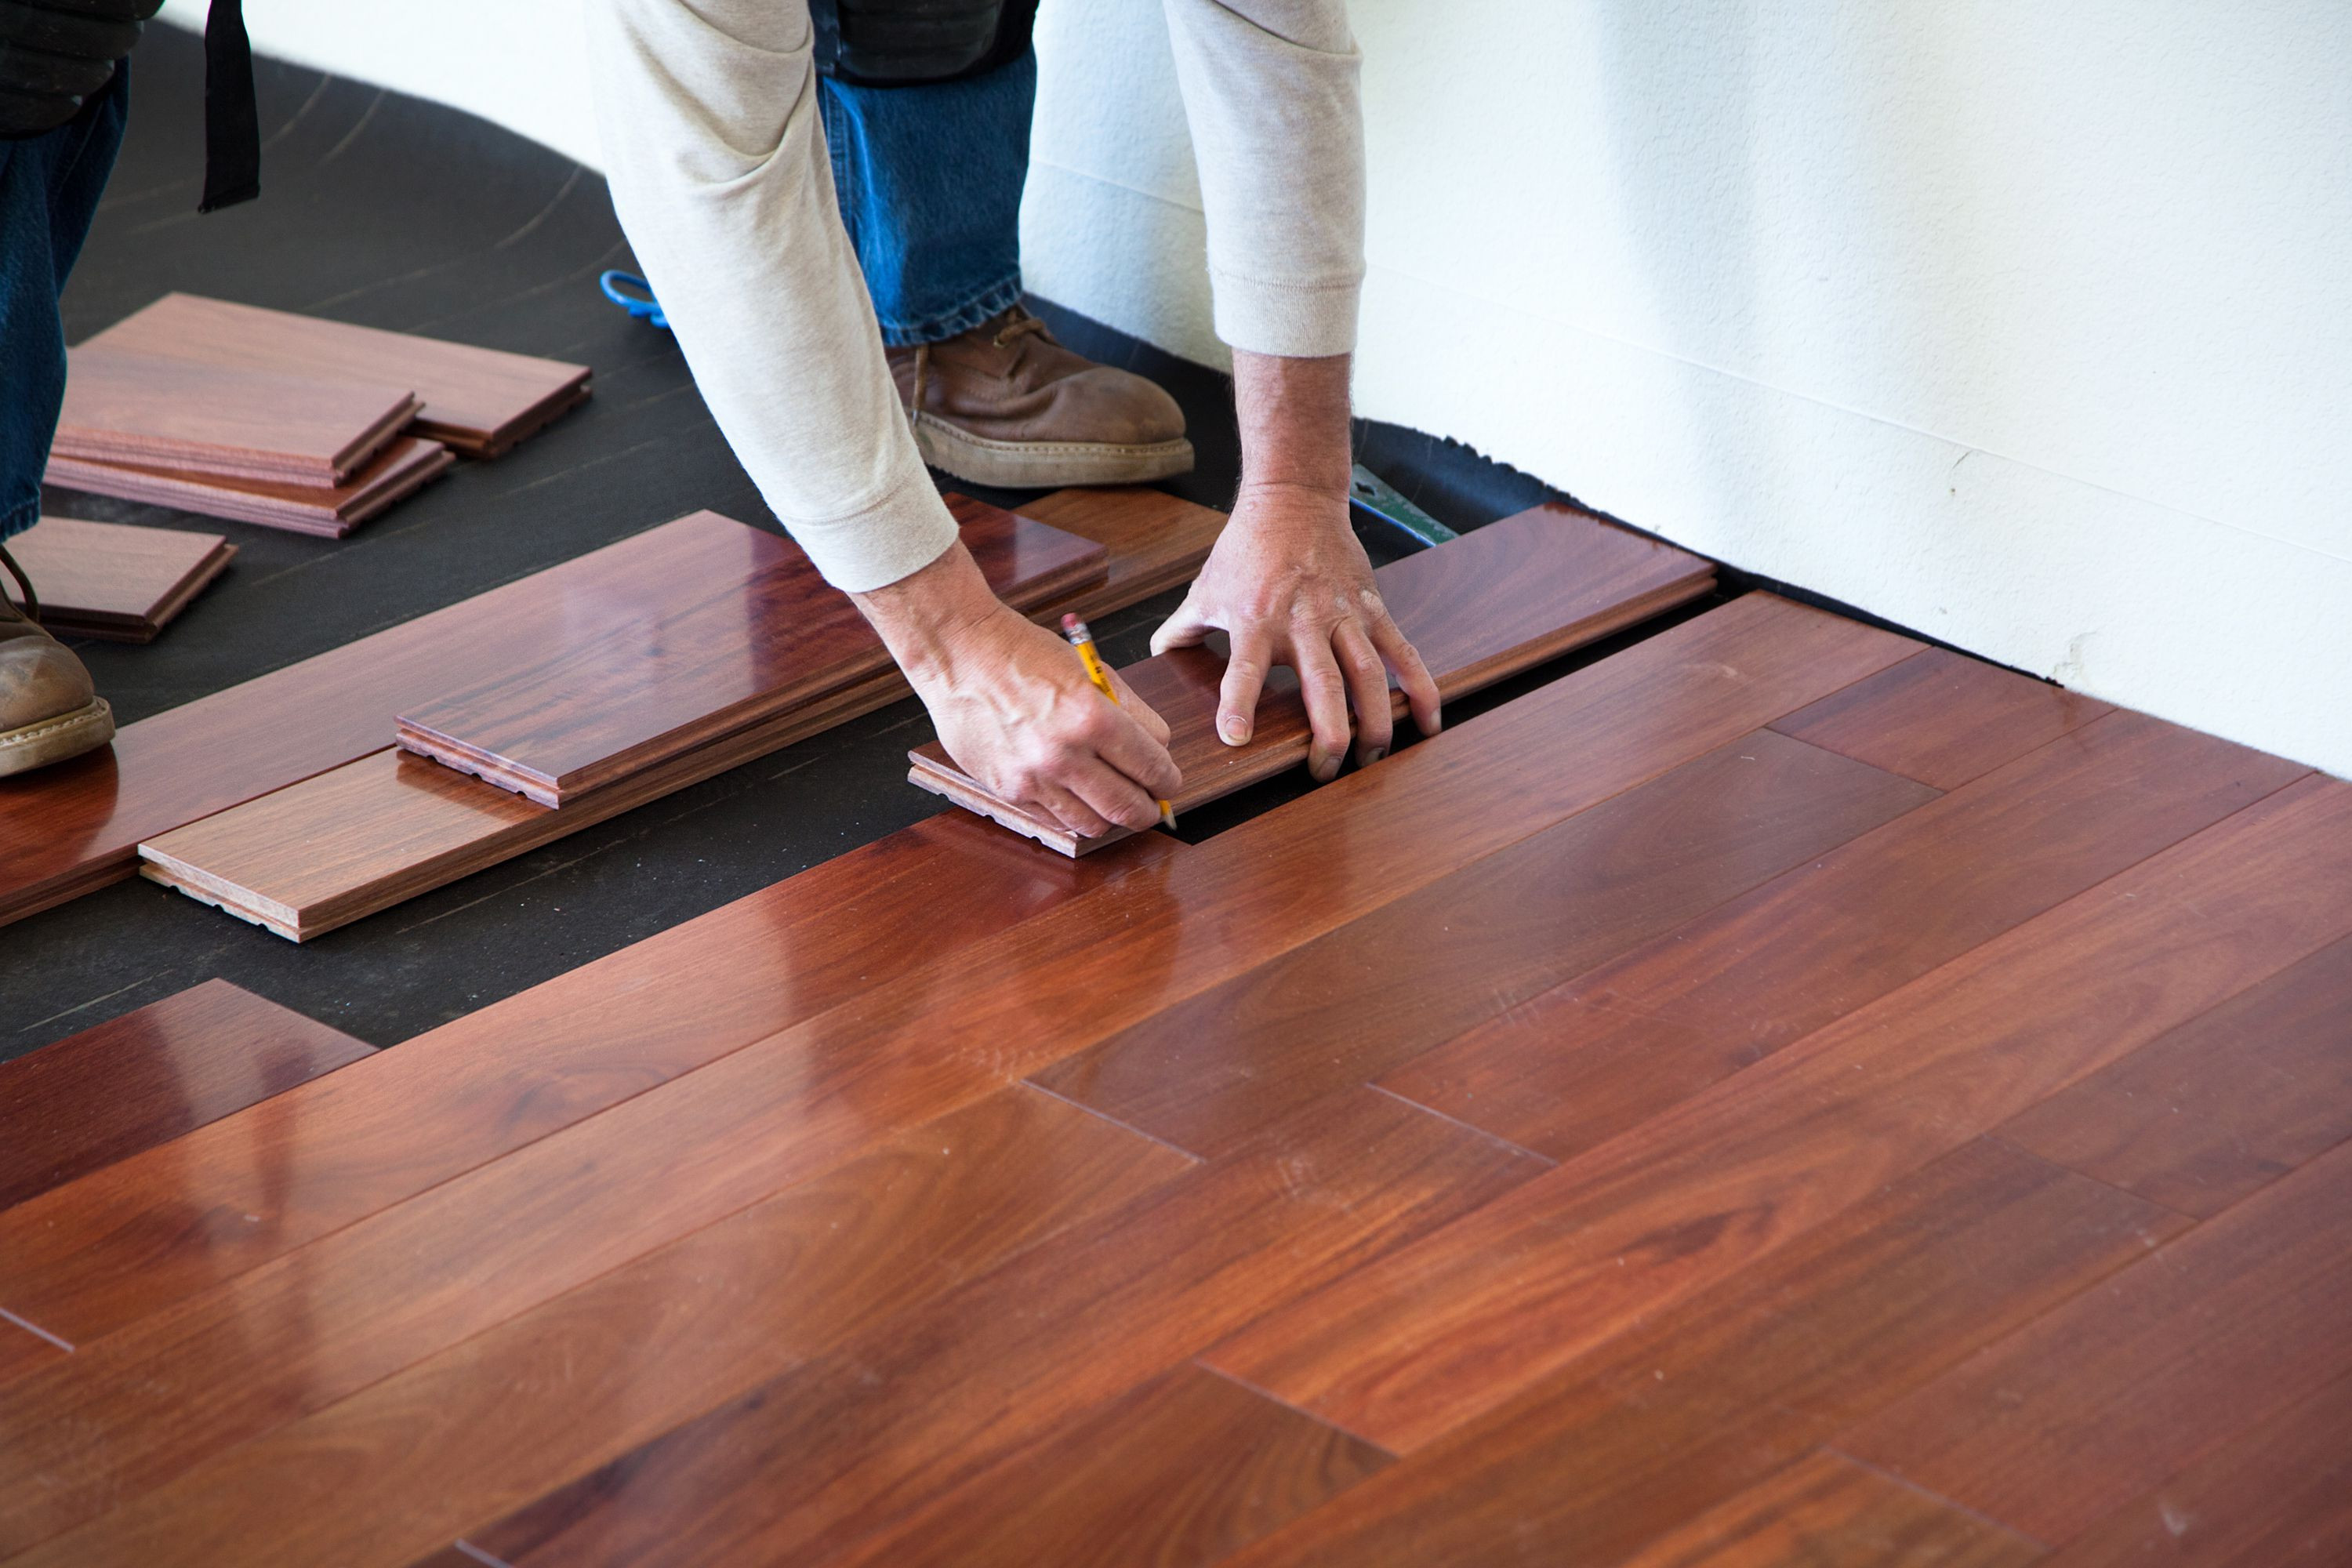 hardwood flooring glued to concrete of the subfloor is the foundation of a good floor in installing hardwood floor 170040982 582b748c5f9b58d5b17d0c58